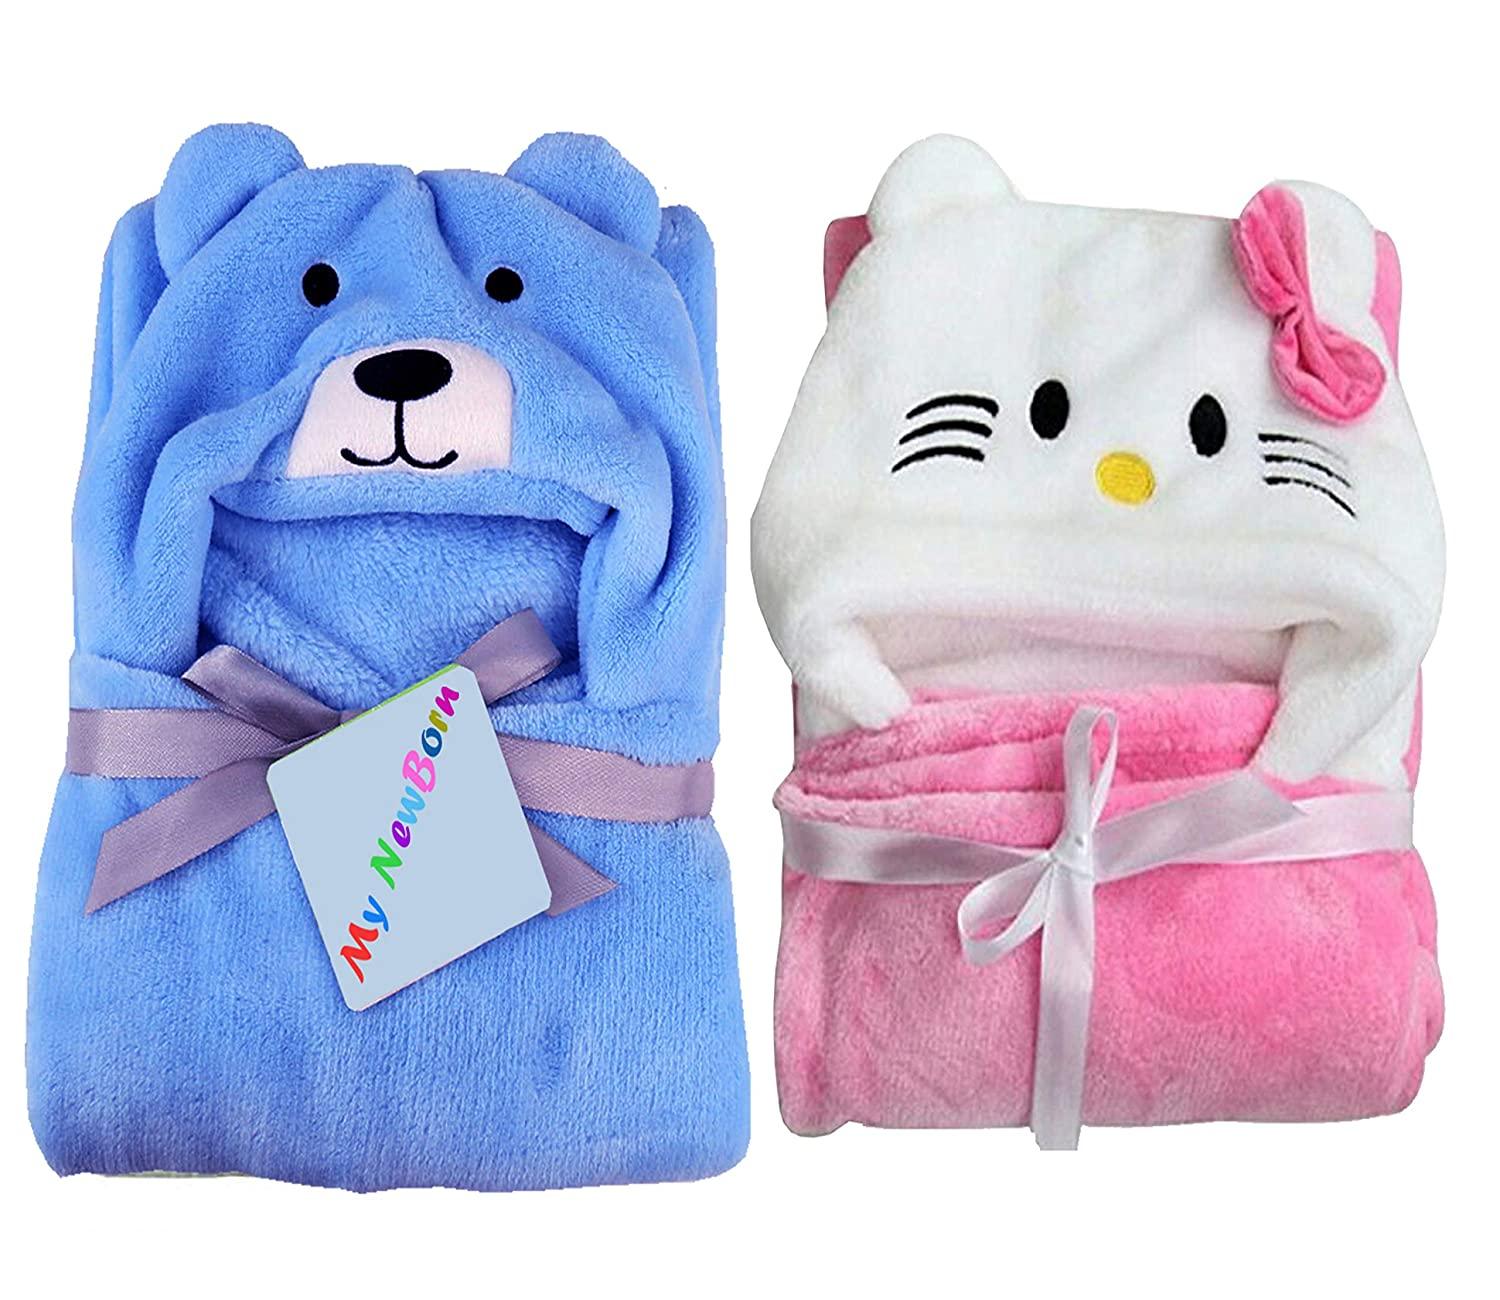 My NewBorn Ultra Soft Baby Blanket Wrapper (Set of 2, Pink Katty/Sky Puppy)